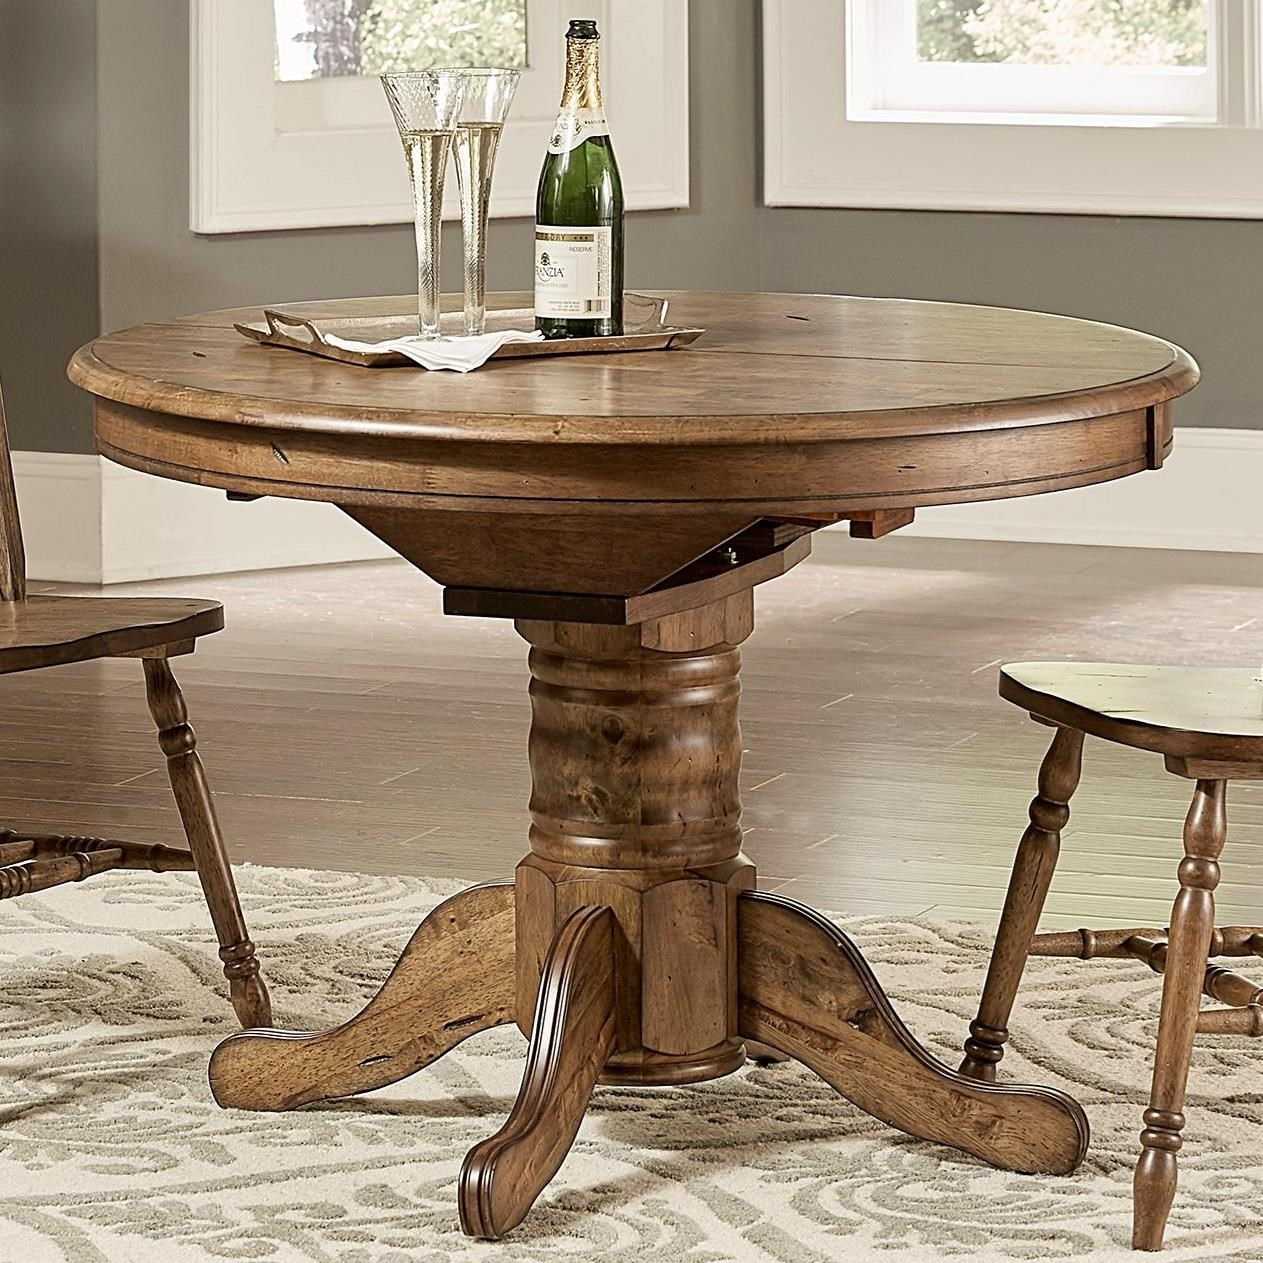 Carolina Crossing Oval Pedestal Dining Table by Liberty Furniture at Lapeer Furniture & Mattress Center